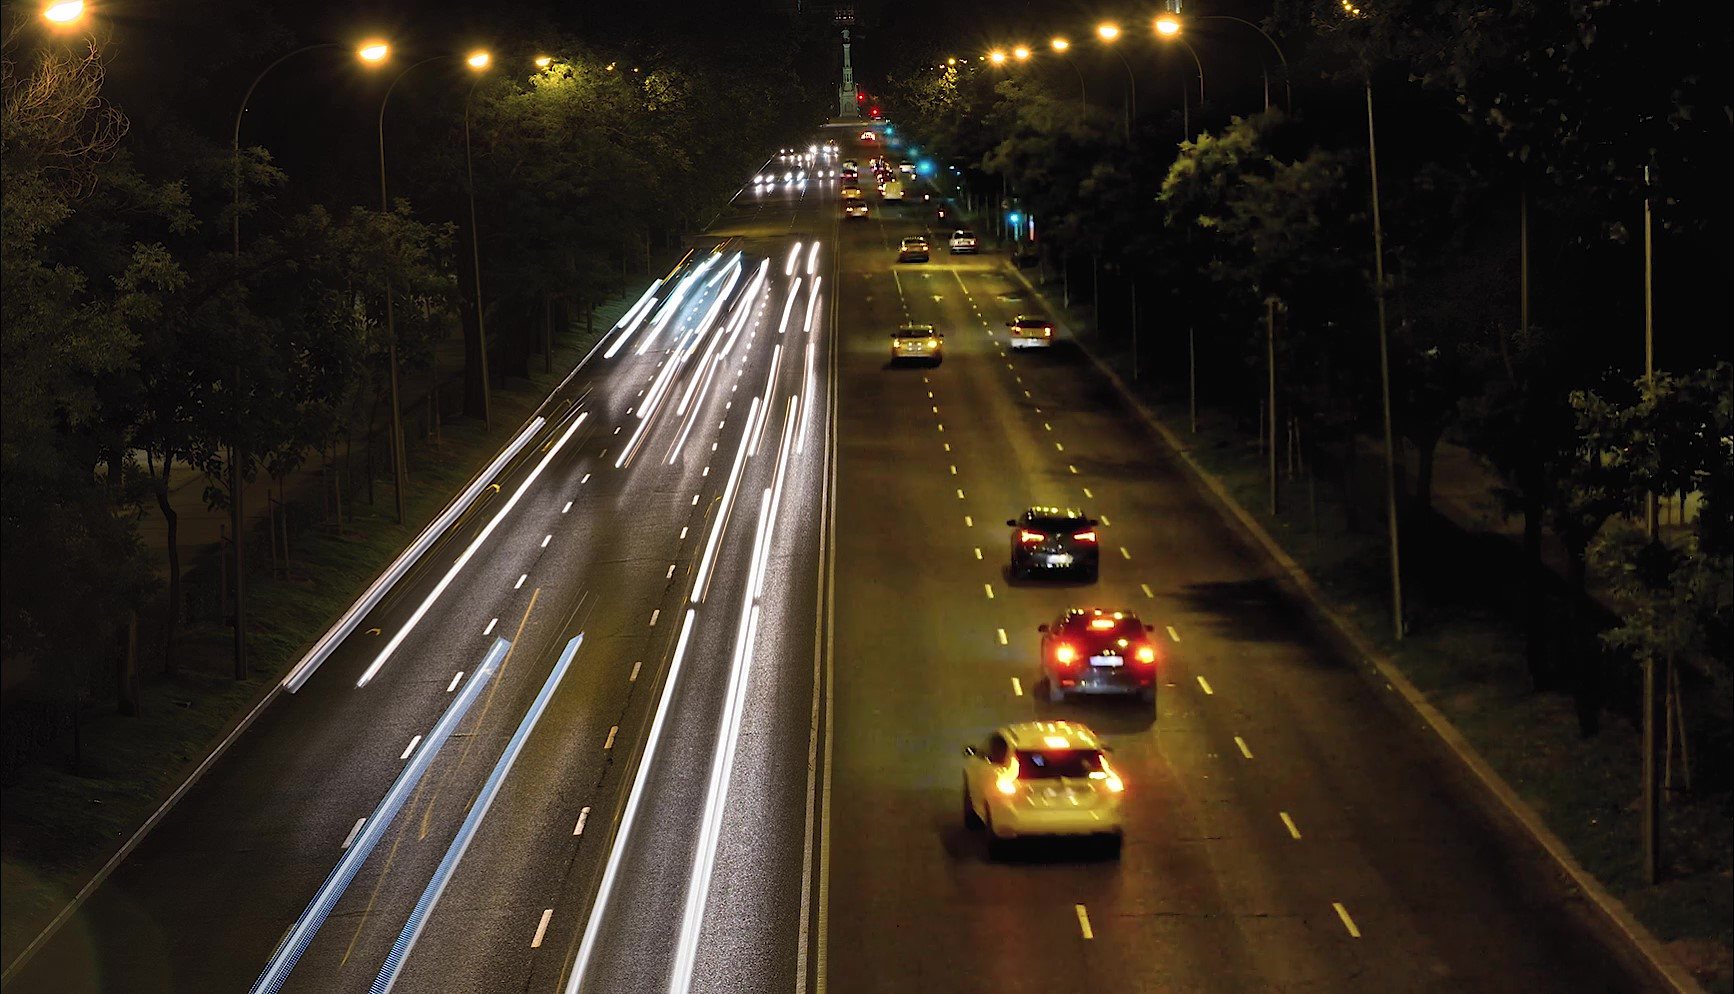 Traffic at night cinemagraph by Kassisien